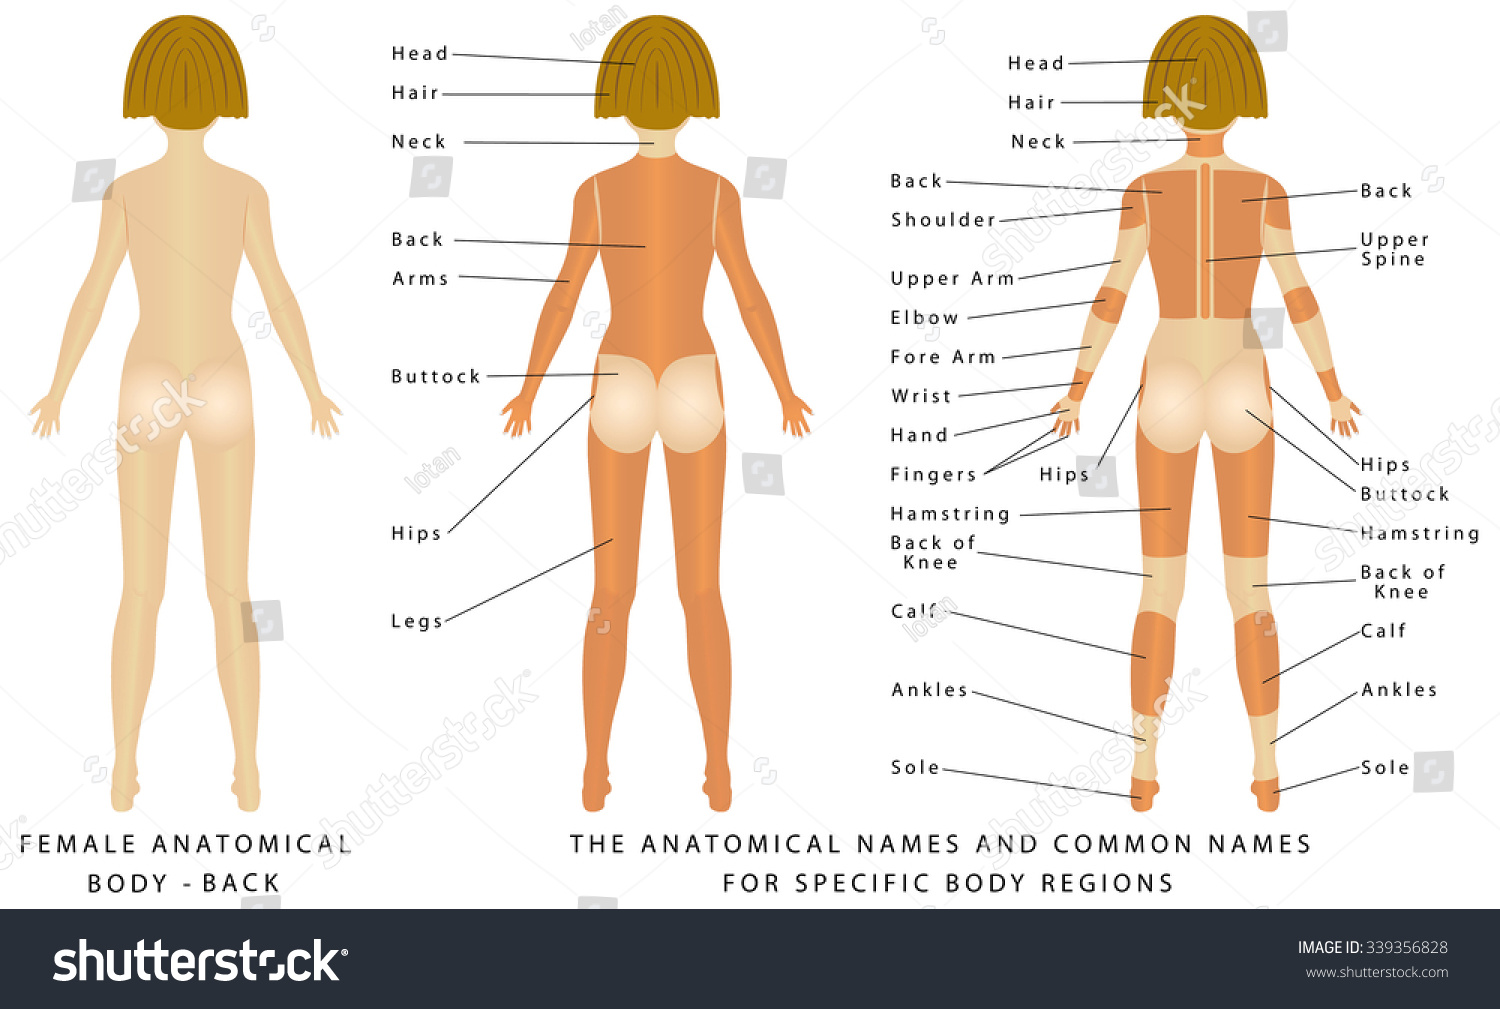 Female Body Back Surface Anatomy Human Stock Photo Photo Vector